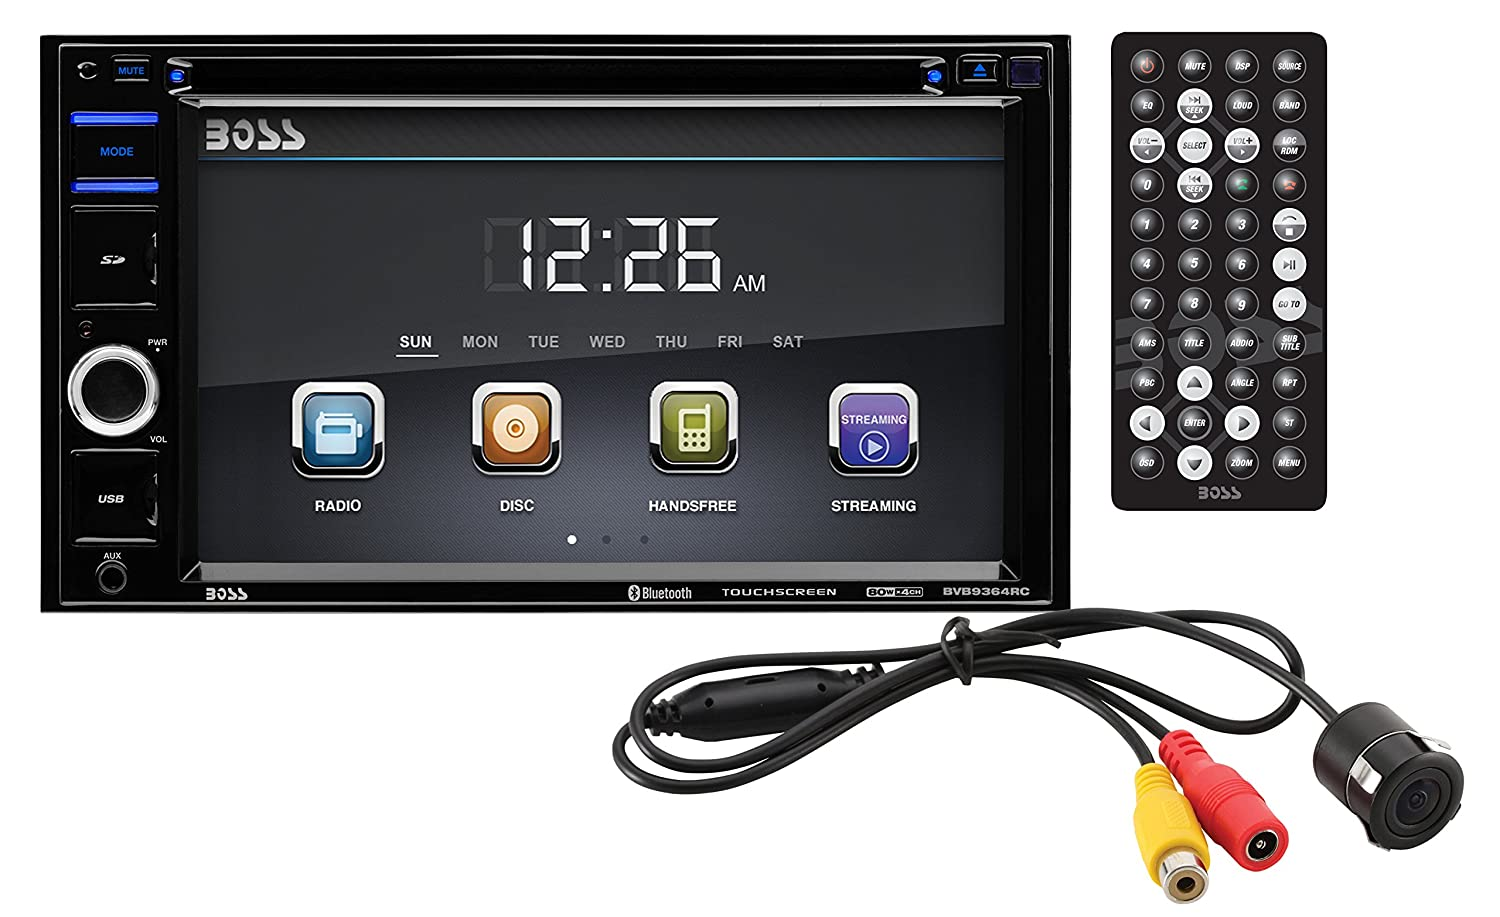 BOSS AUDIO BVB9364RC Double-DIN 6.2 inch Touchscreen DVD Player Receiver, Bluetooth, Wireless Remote and Rear camera included